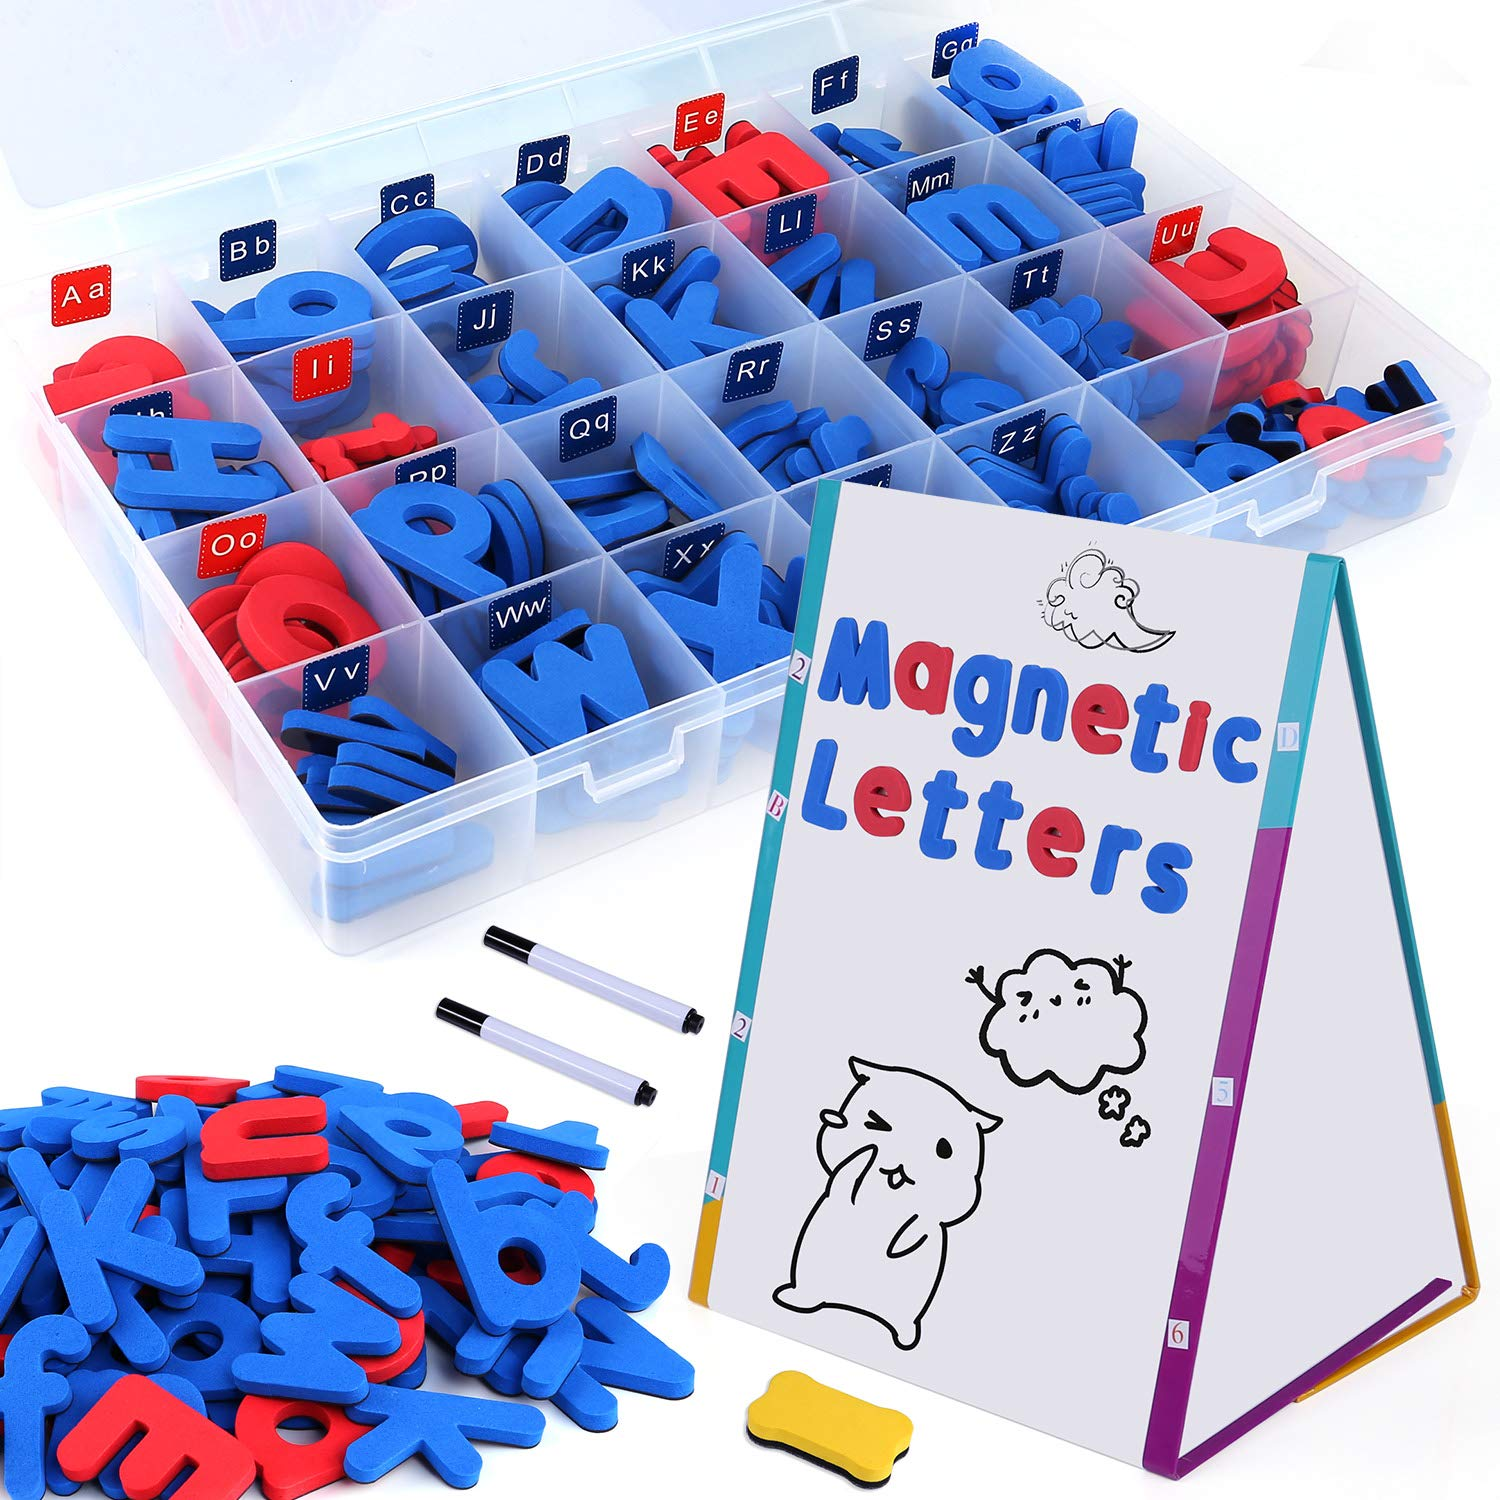 INNOCHEER Classroom Magnetic Letters and Numbers Kit with Easel Board, Educational Foam Alphabet ABC Magnets for Preschool Kids Spelling and Learning (199pcs in Box) by INNOCHEER